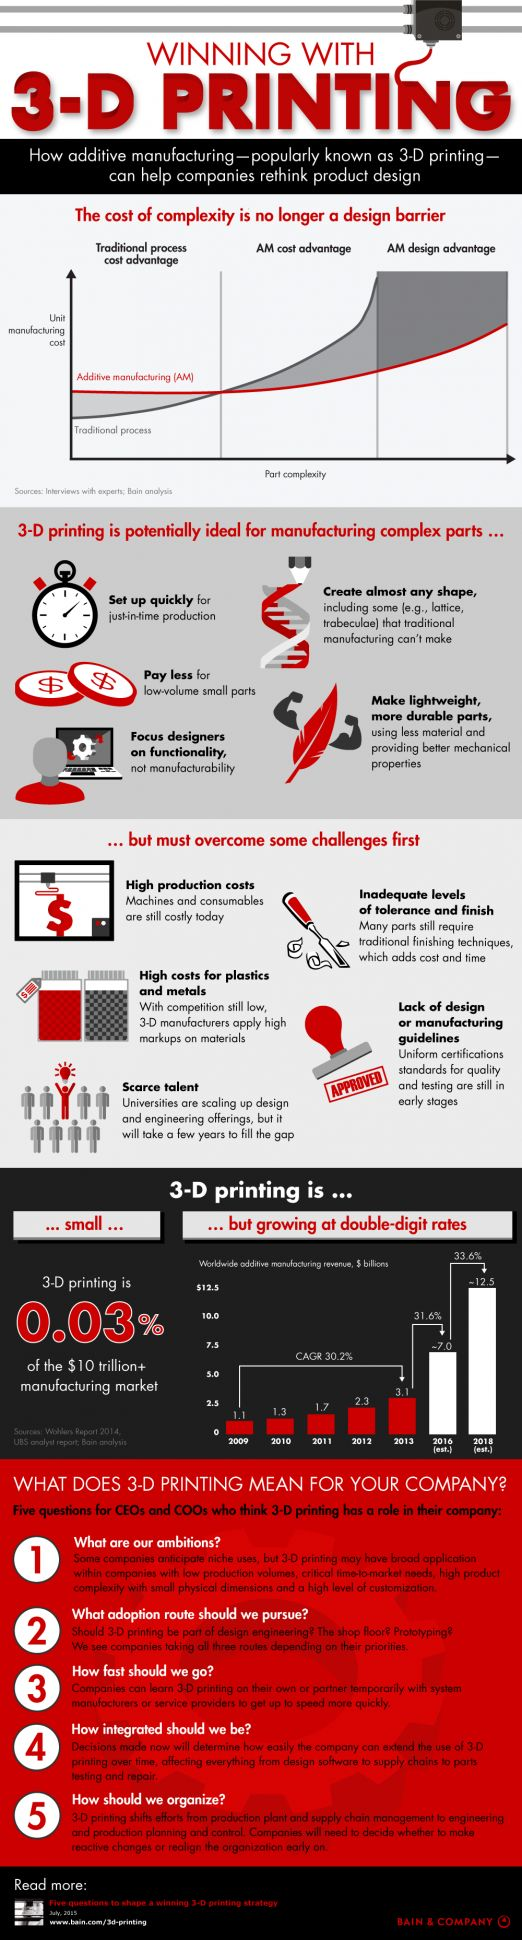 How 3D Printing Can Help Companies Rethink Product Design Infographic - 3D Printing Infographic